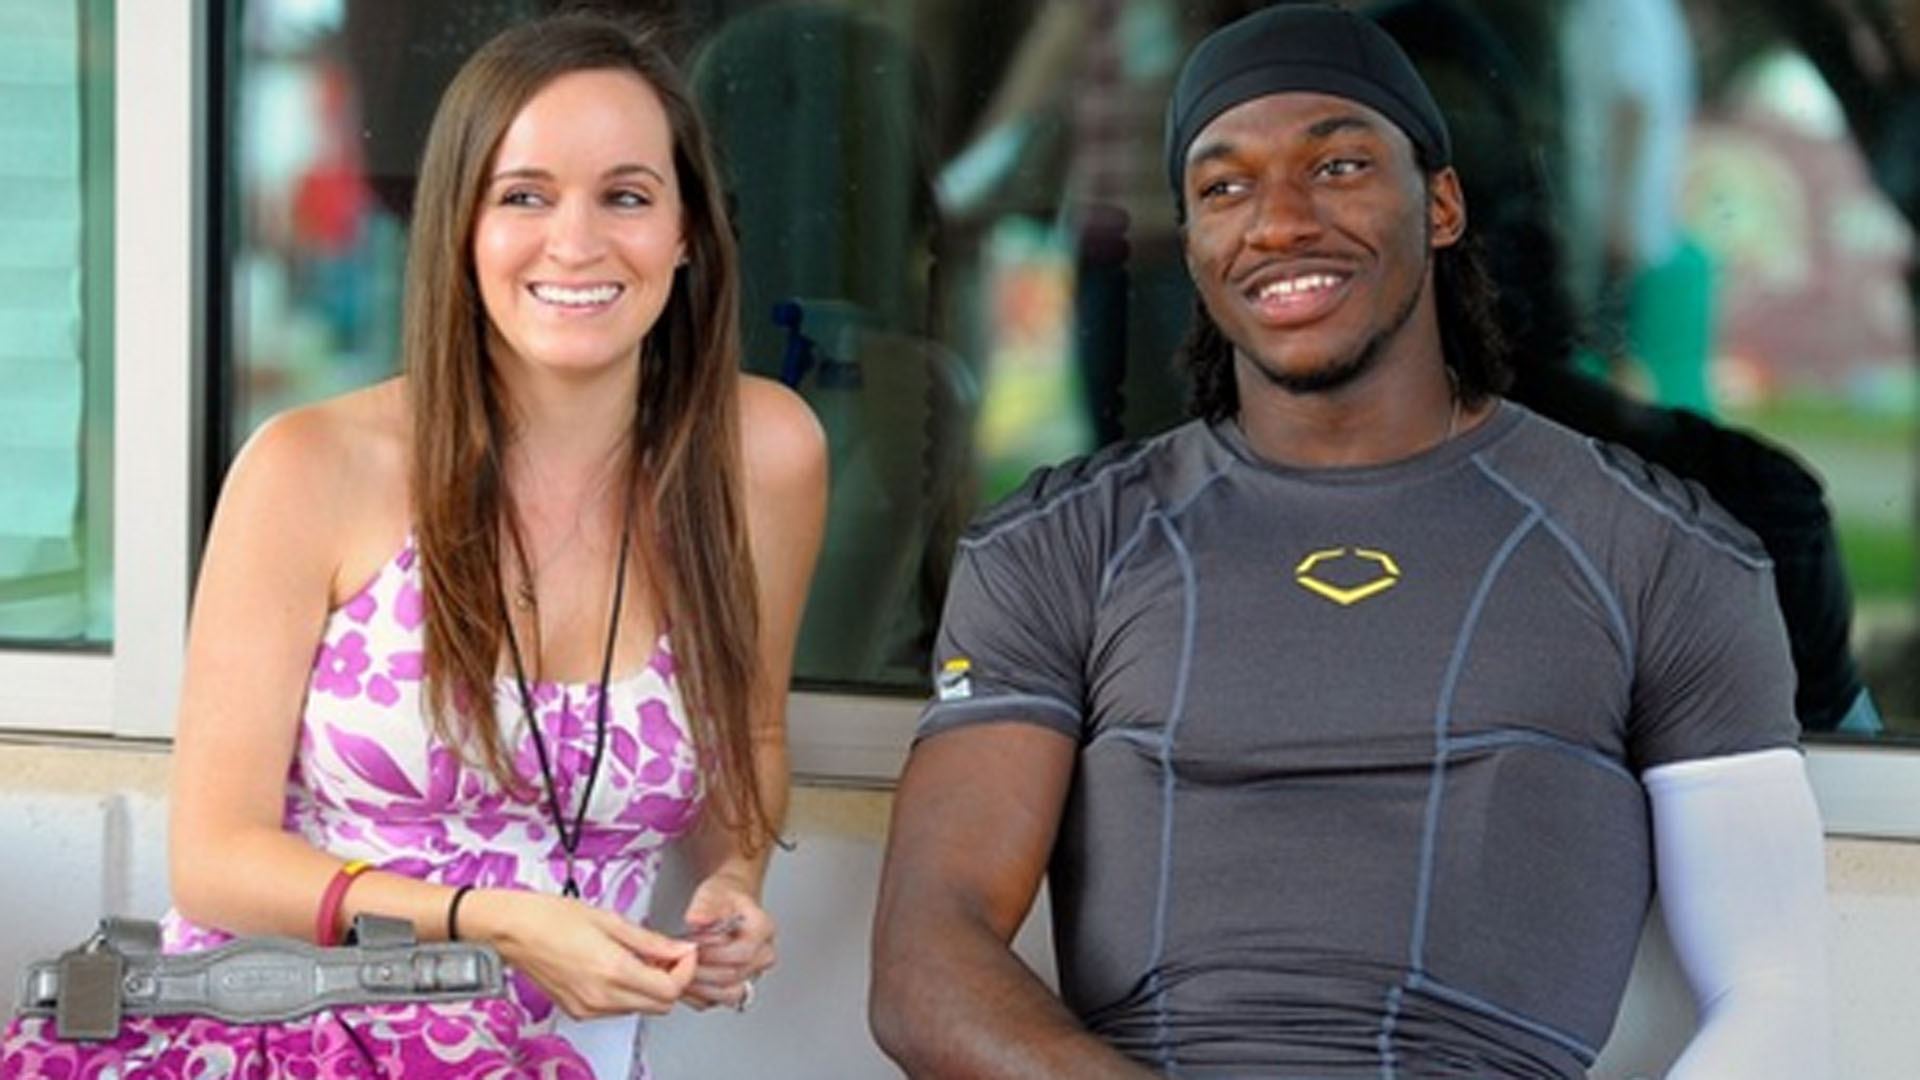 rg3 dating a white girl (08-12-2016 01:31 am) menaceii wrote: my first post, but yeah, there's nothing respectable about receiving debasing treatment to walk into a club and be subject to further debasement from the clubbers.